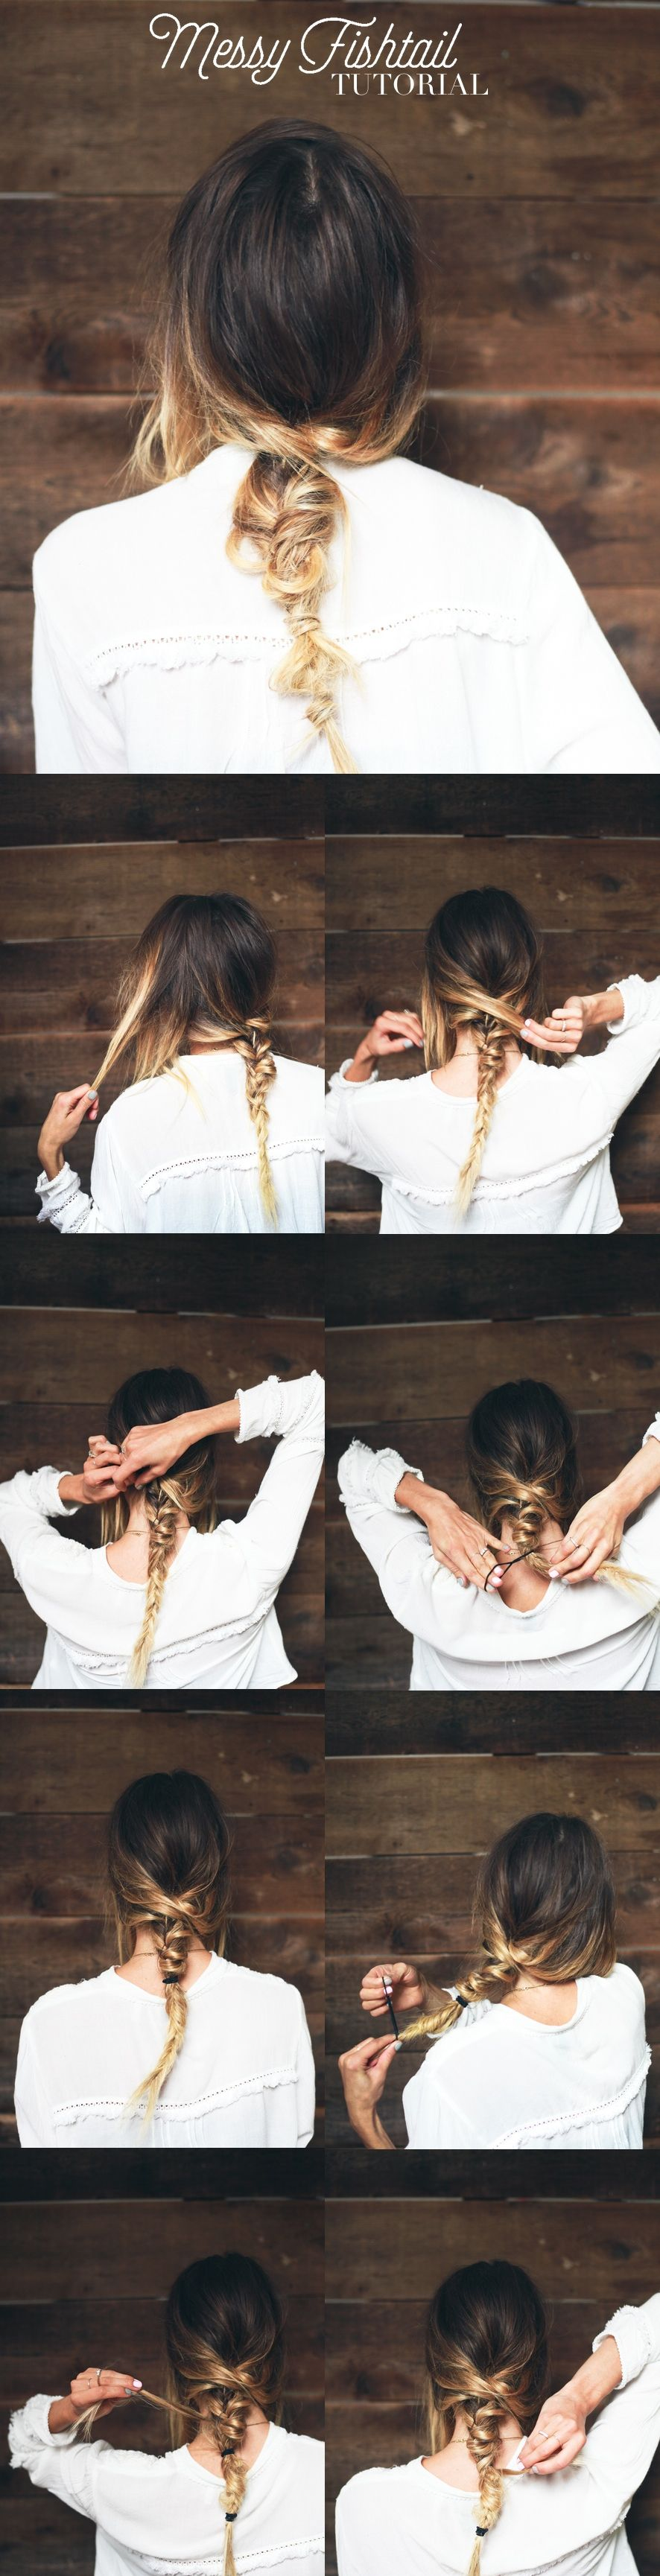 Hair Tutorial // Messy Fishtail #hairtutorials